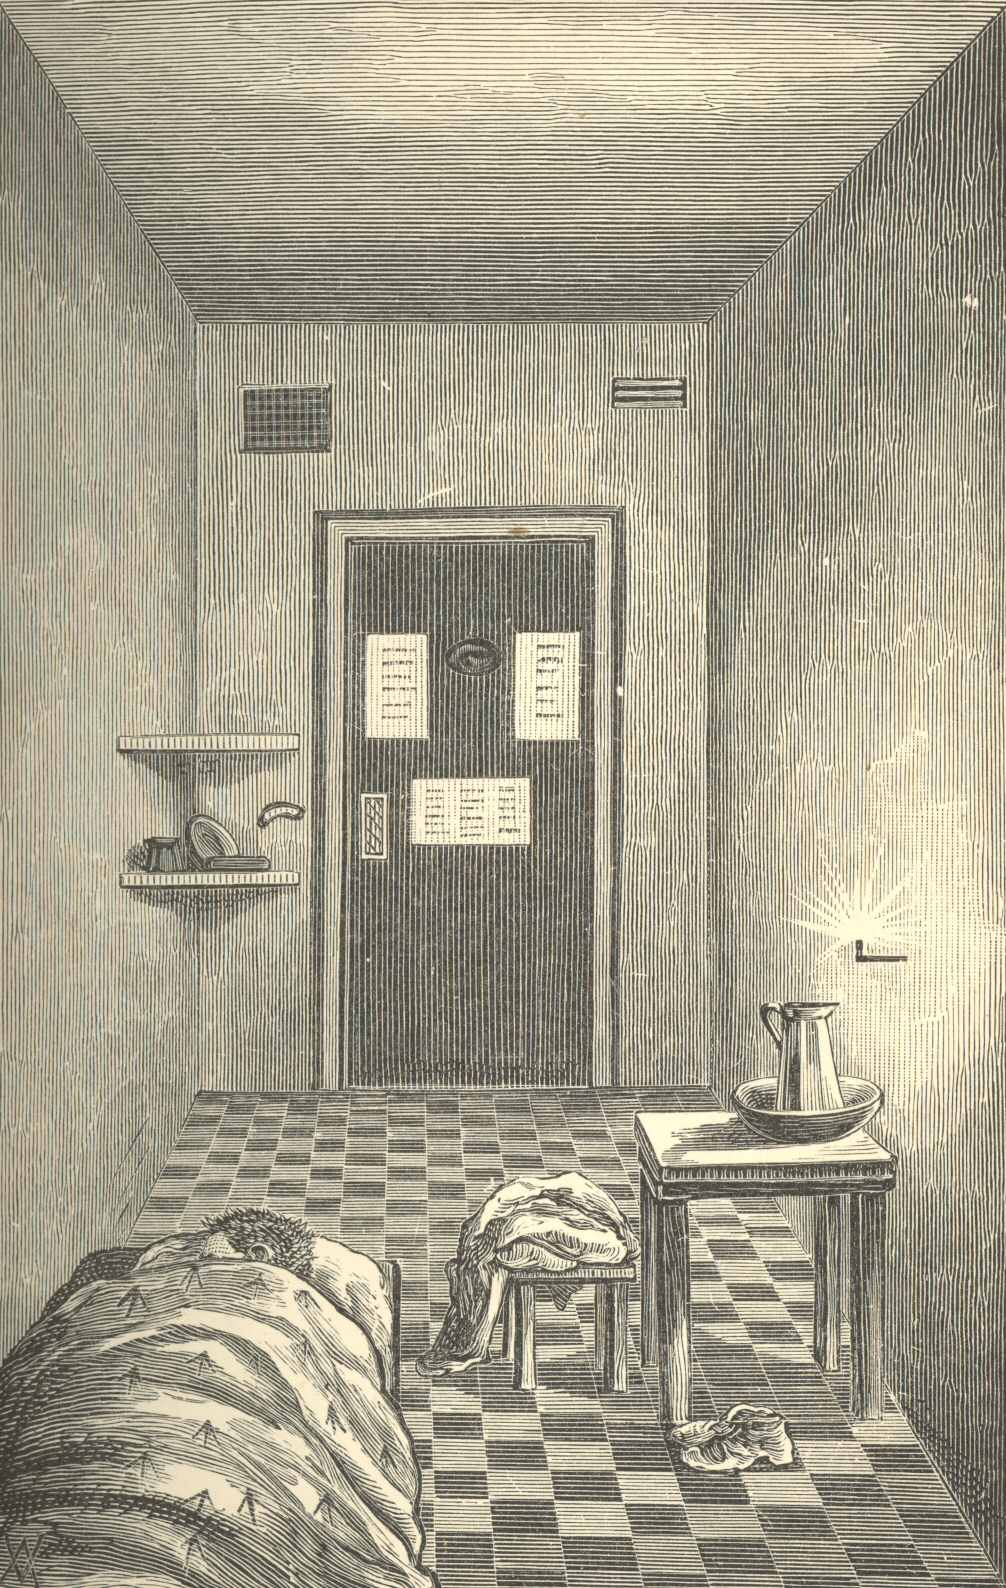 Eighteen Months Imprisonment By Donald Shaw Onefire Clover Night Lamp A Slight Difference Existed Between The Regulation Here And At Newgate On Subject Of Lights P 179out Coldbath It Was Serious Offence To Retire